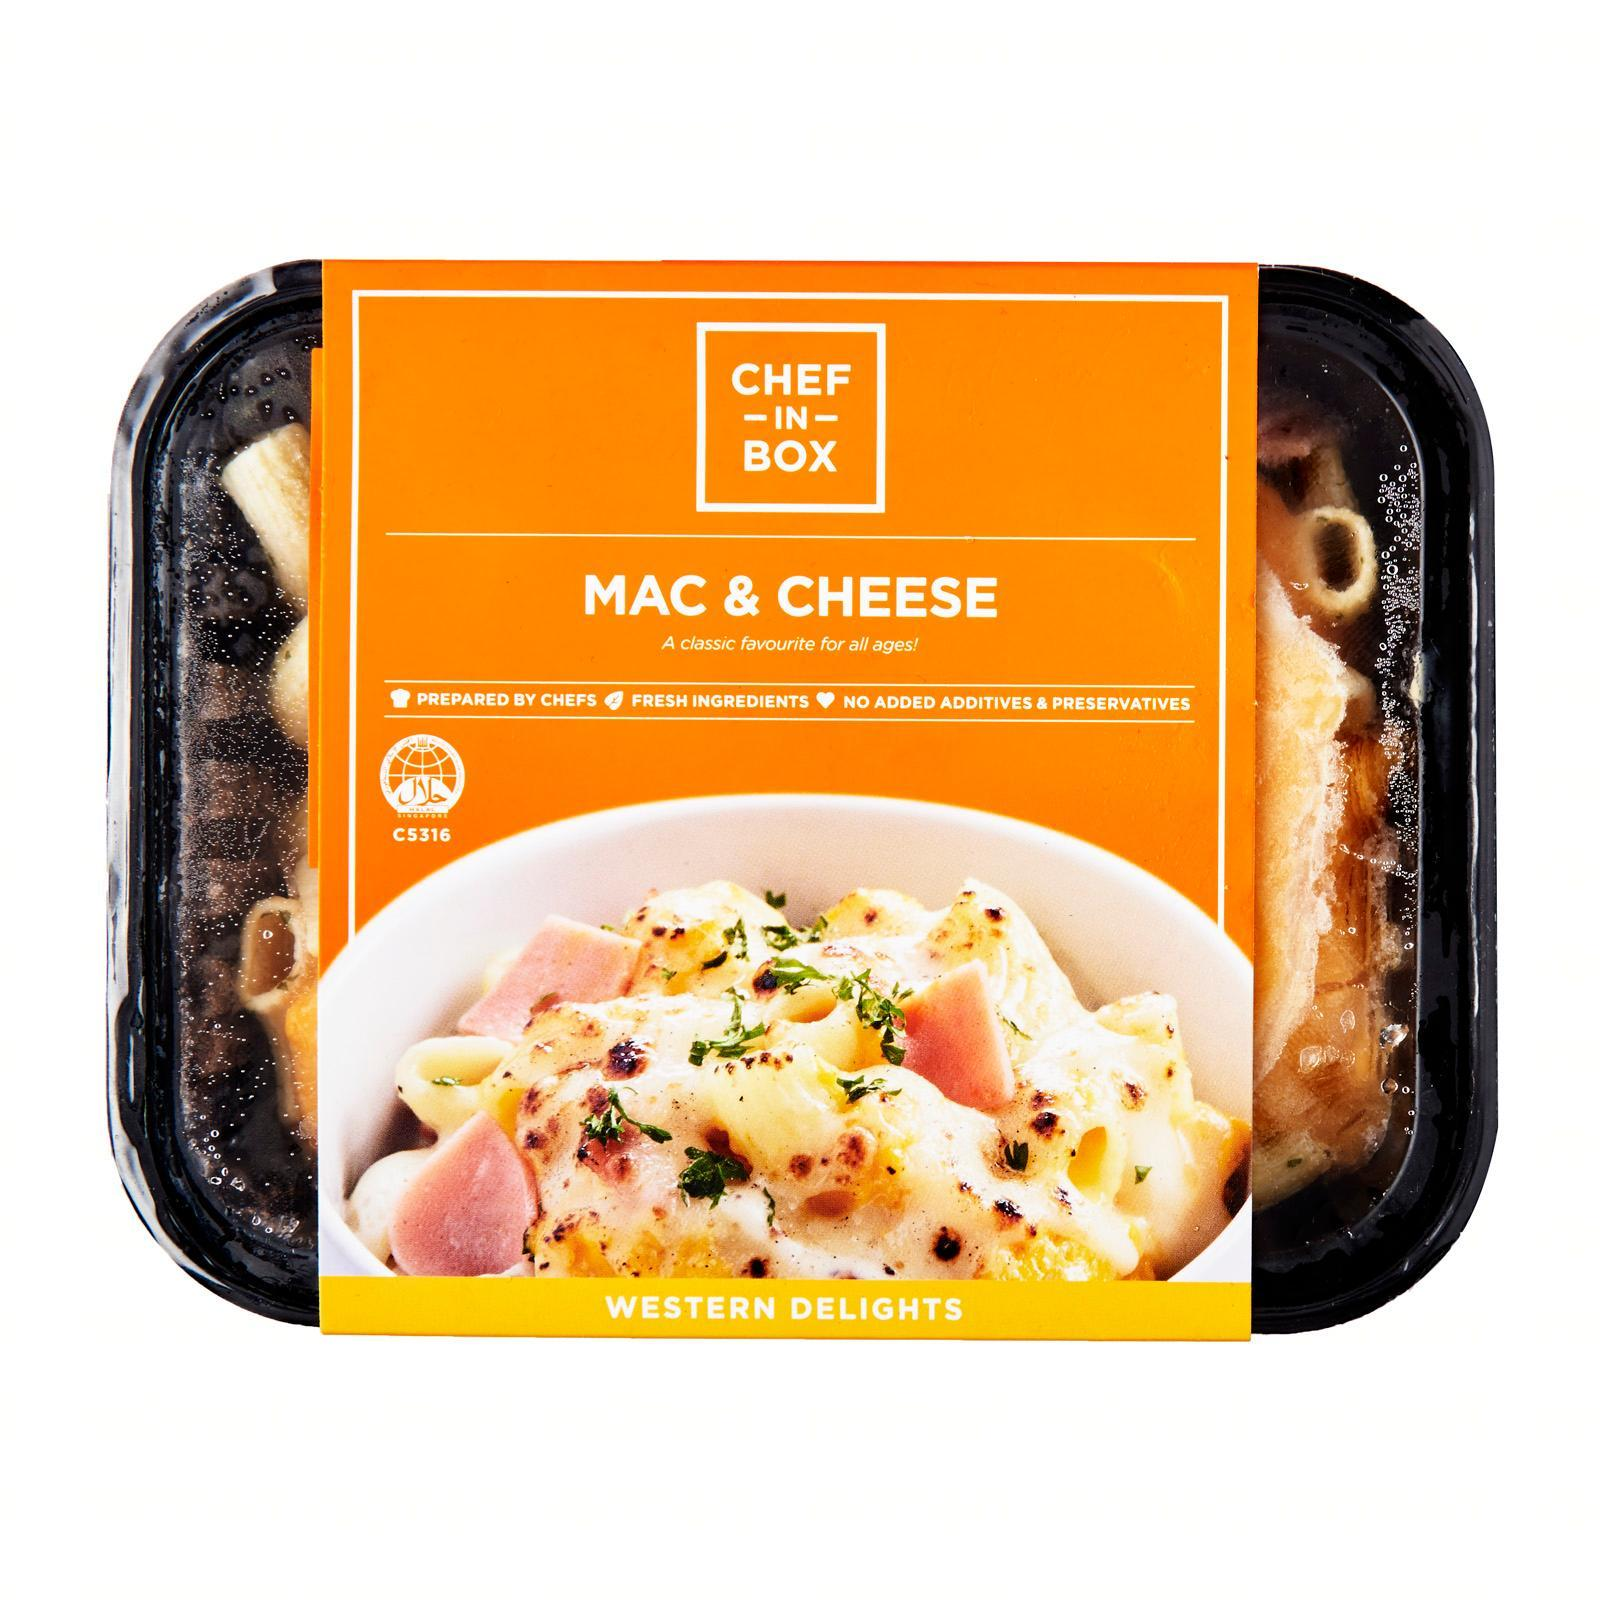 Chef-in-Box Mac And Cheese - Frozen